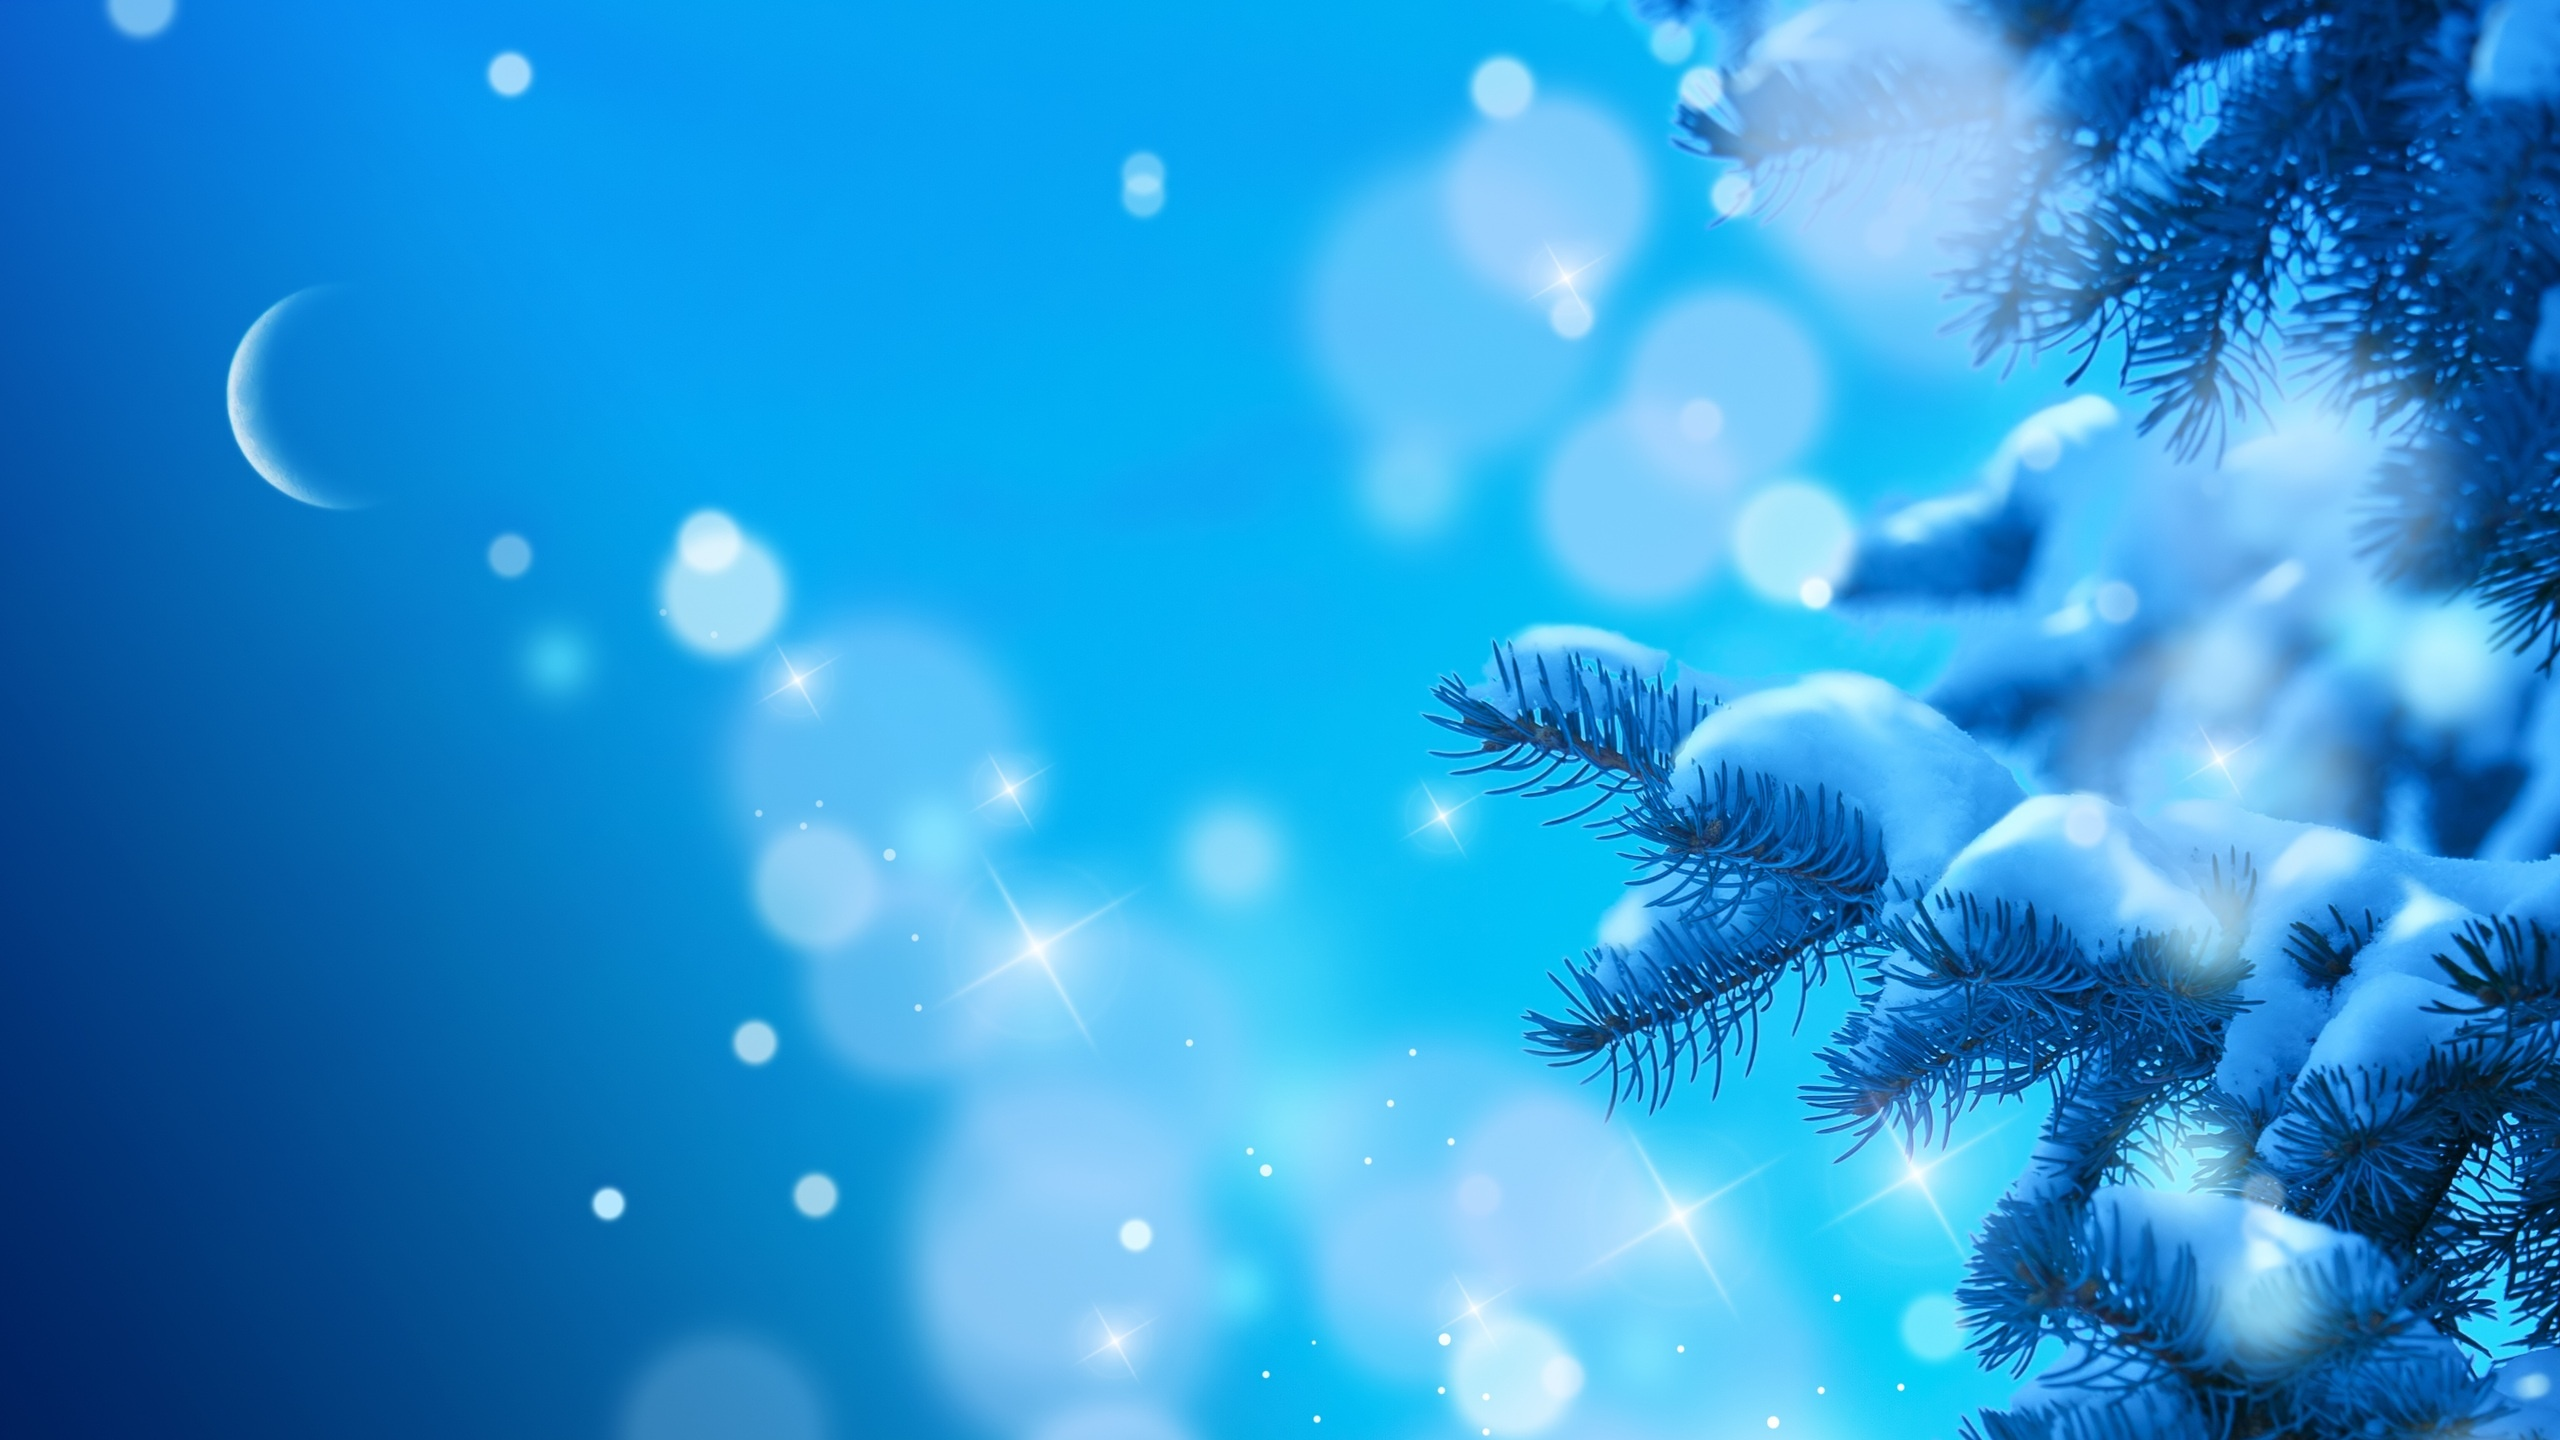 winter-tree-art-2560x1440